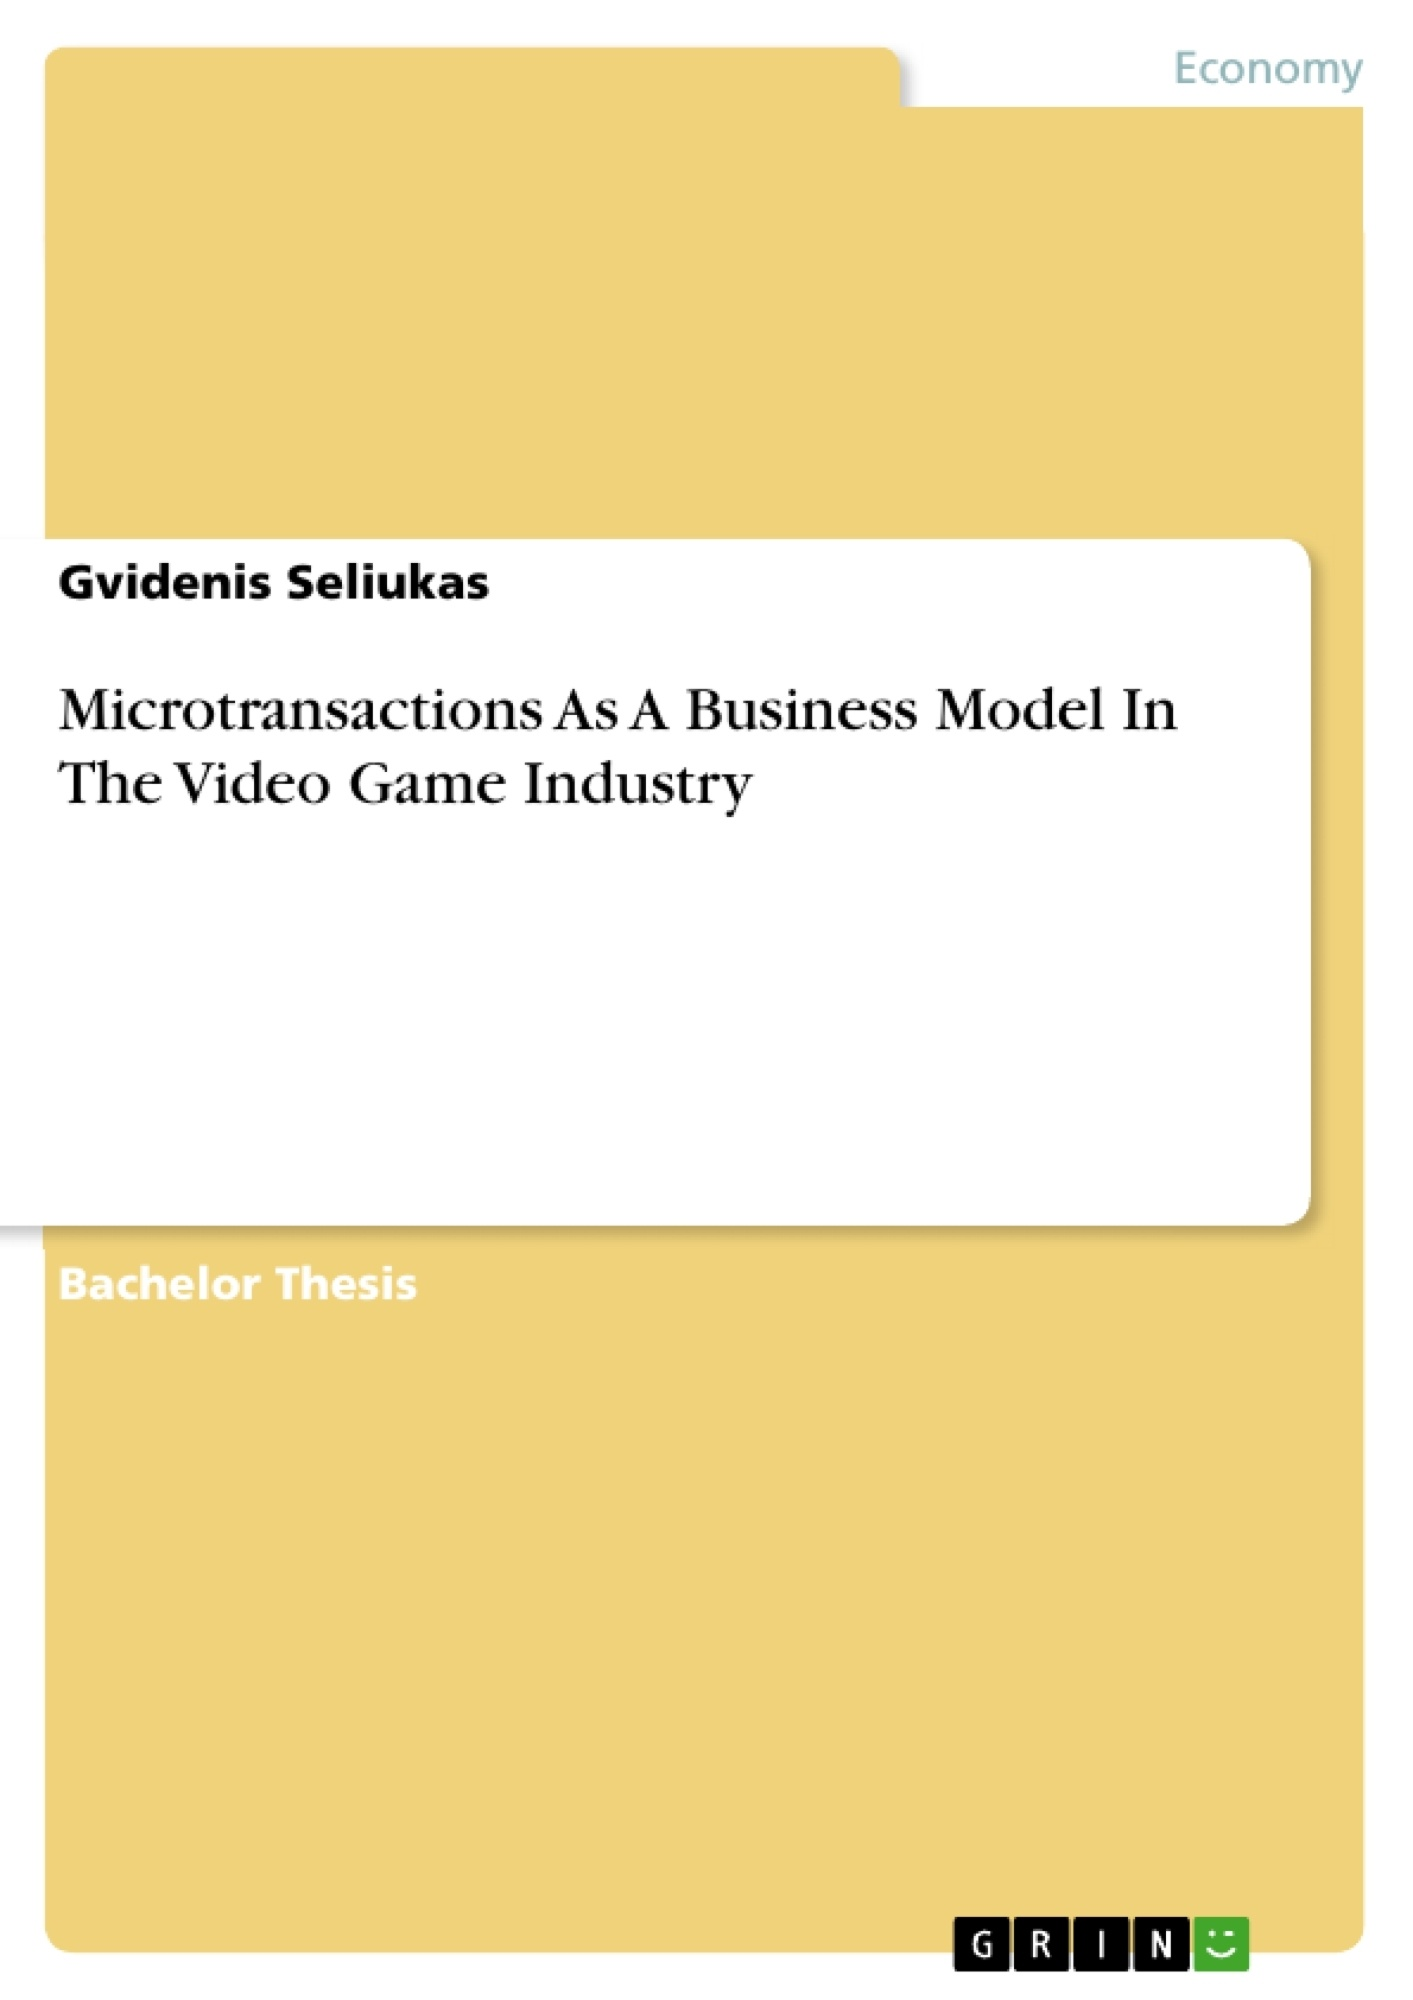 as a business model in the video game industry publish your thesis thesis essay or term paper